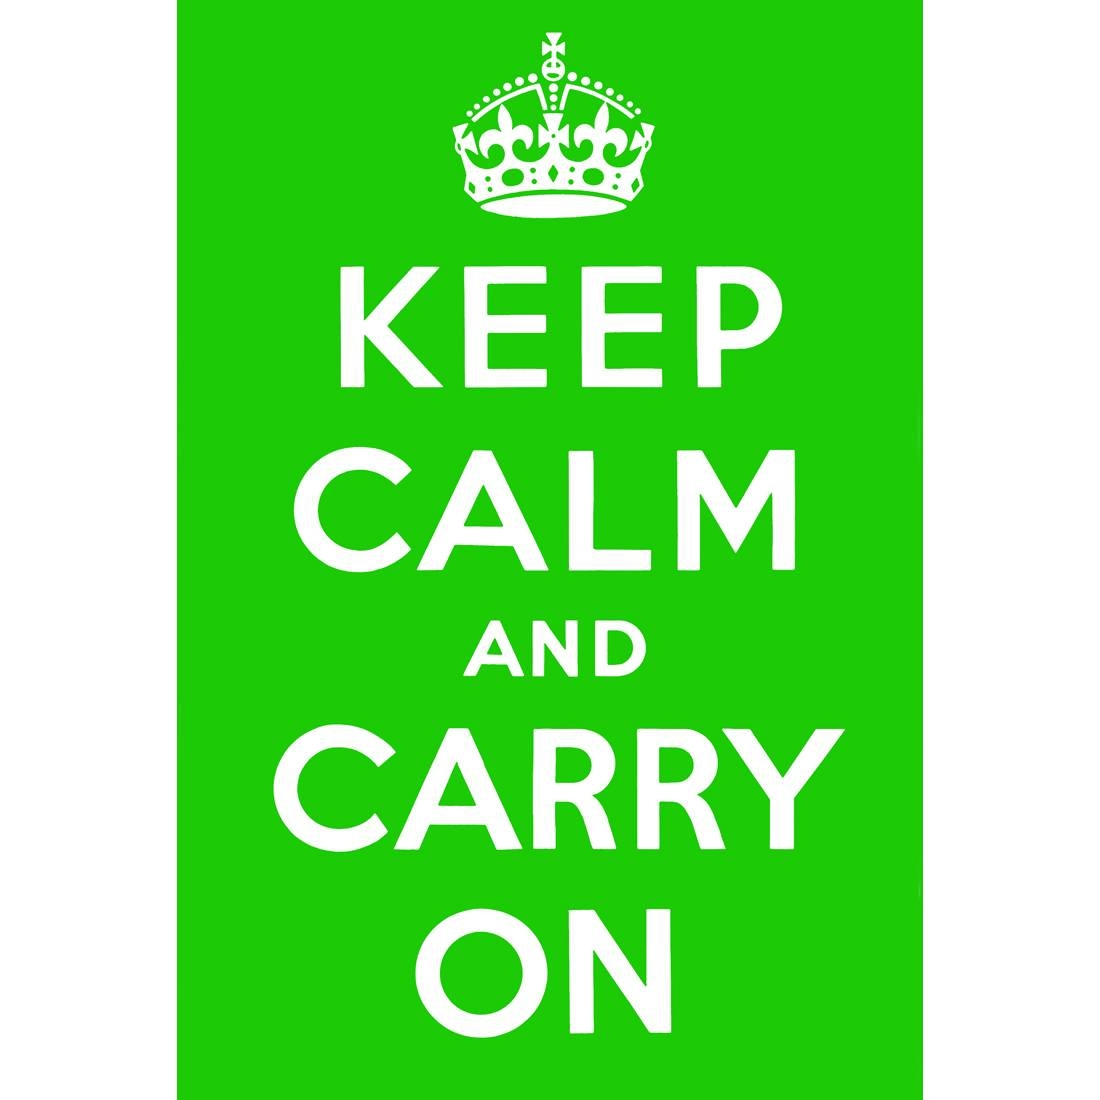 Keep Calm And Carry On, Green – Canvas Print – Wall Art – Australia With Most Popular Keep Calm And Carry On Wall Art (View 17 of 25)